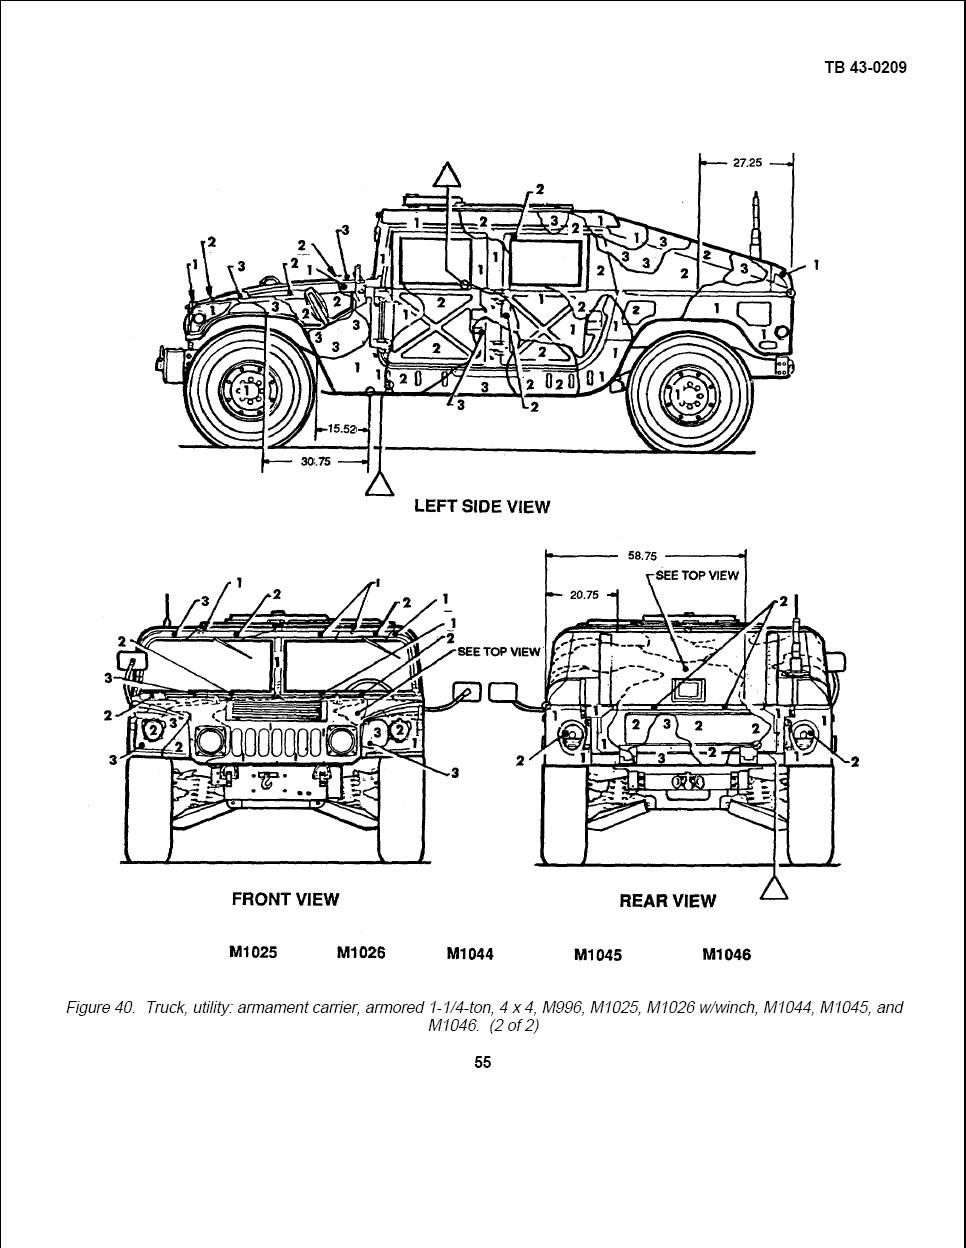 Humvee Engine Wiring Harness Schematics Auto Electrical Diagram Hmmwv Schematic And Diagrams 3l80